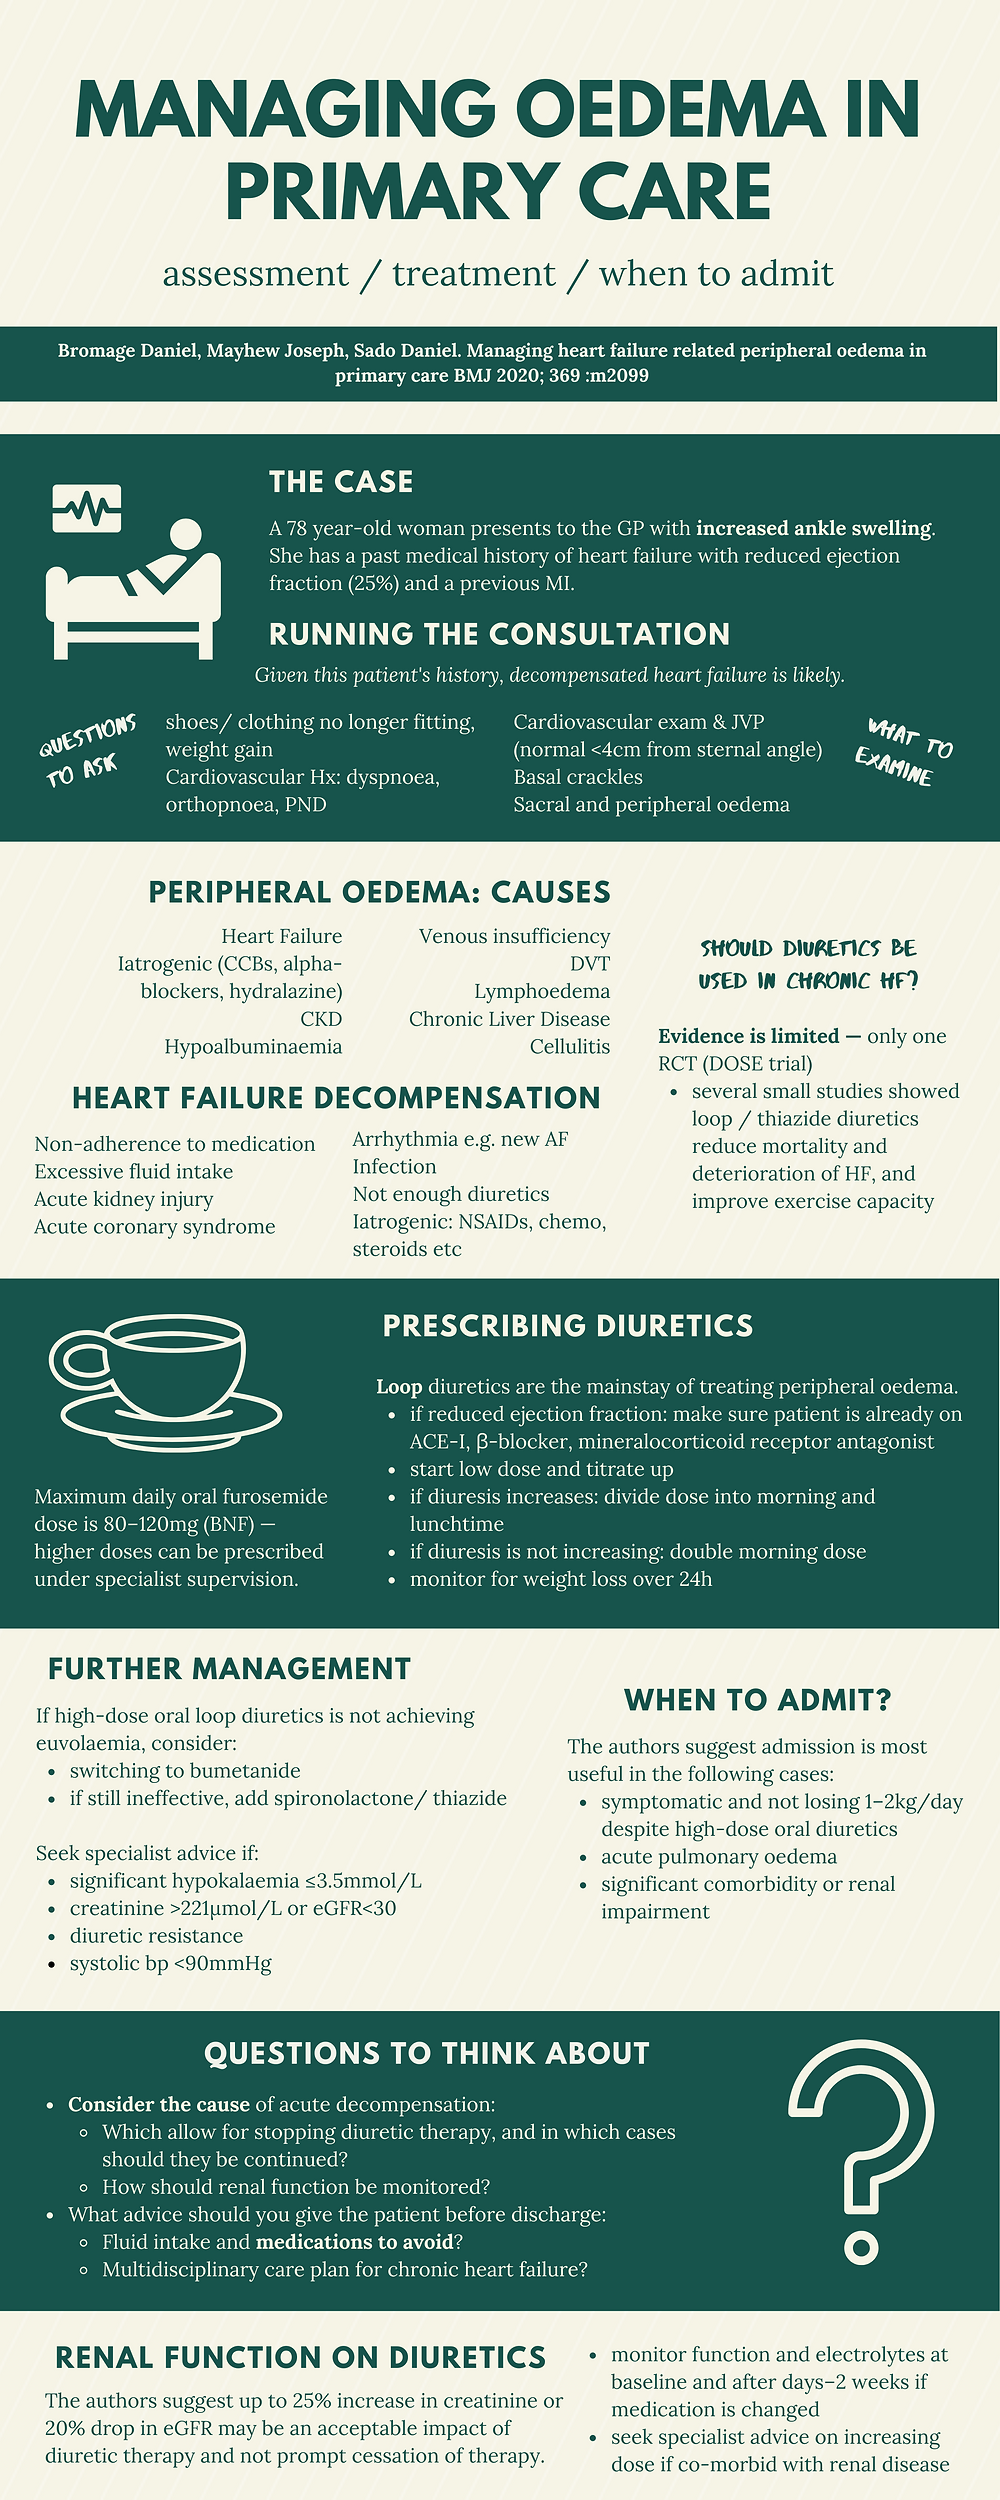 medical research cardiology peripheral oedema heart failure medical students clinical practice bmj